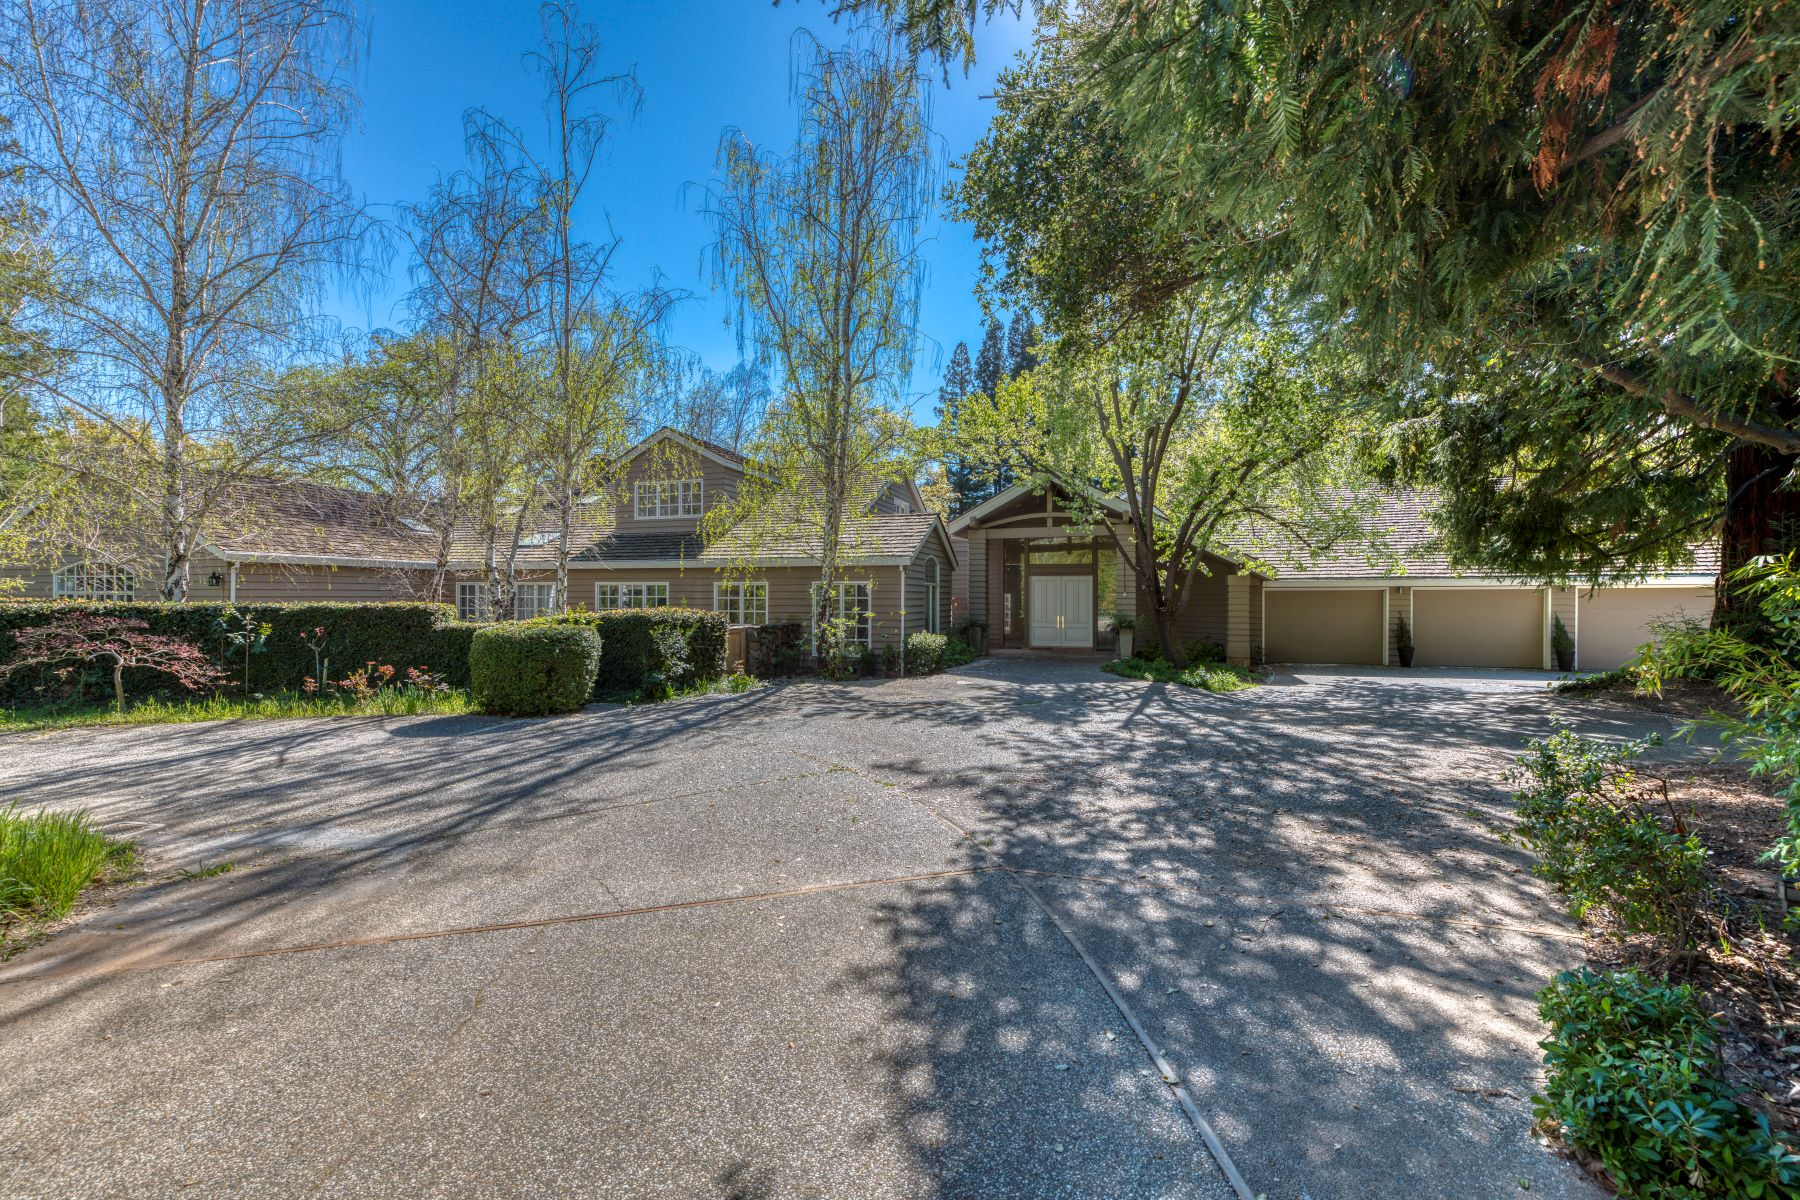 Single Family Homes for Active at 1121 Mariemont Avenue, Sacramento, CA 95864 1121 Mariemont Avenue Sacramento, California 95864 United States